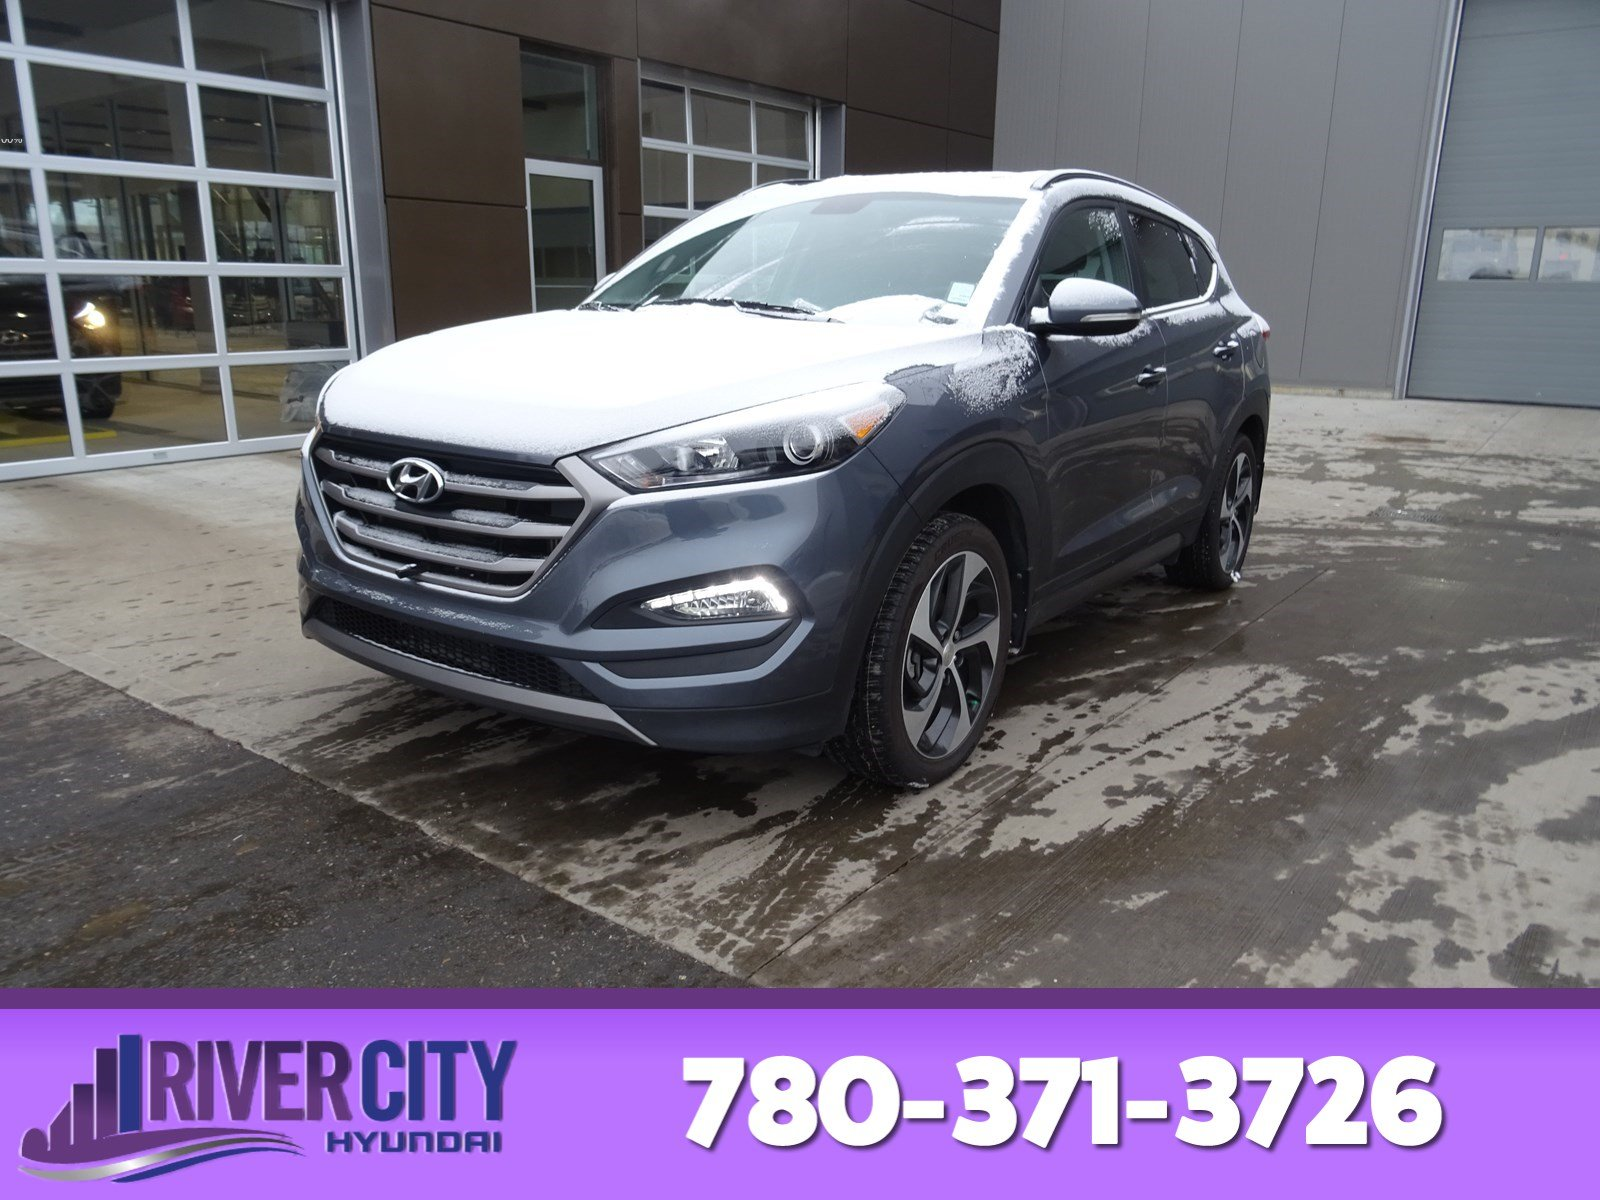 Photo Pre-Owned 2016 Hyundai Tucson AWD LIMITED Navigation GPS, Leather, Heated Seats, Panoramic Roof, Back-up Cam, Bluetooth, A